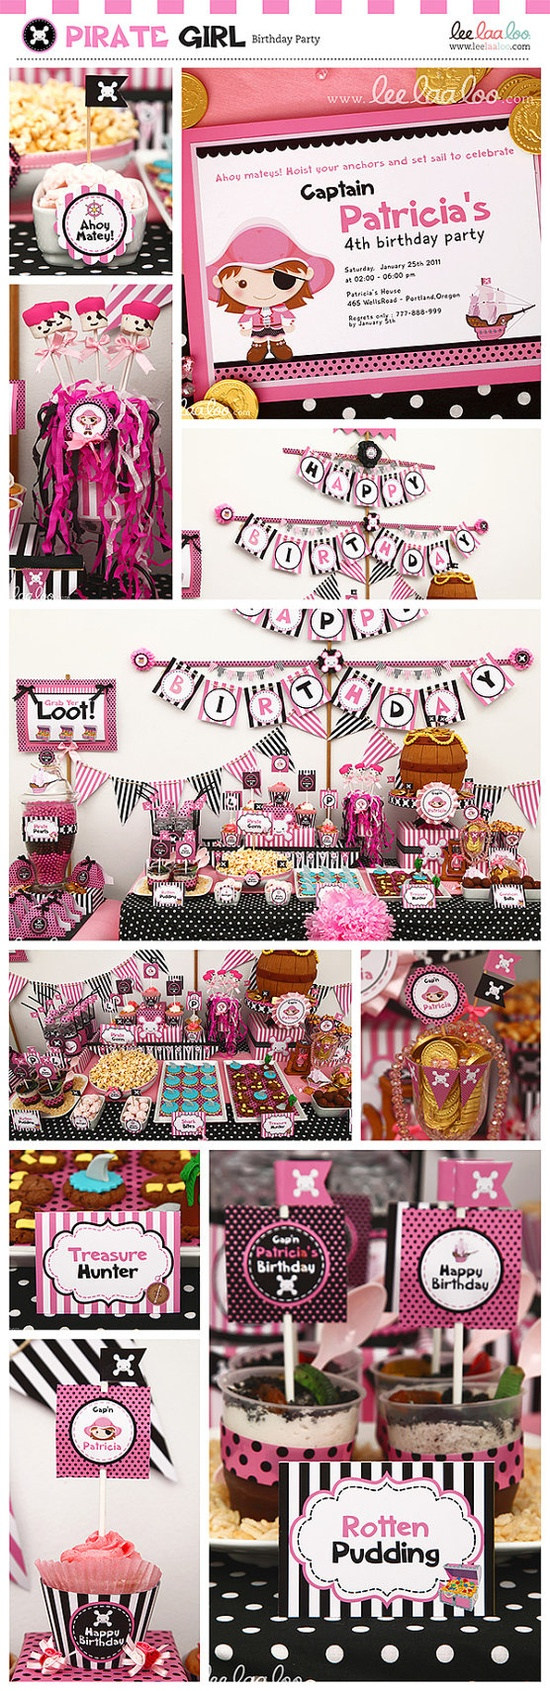 Pirate Girl Pink Black Birthday Party